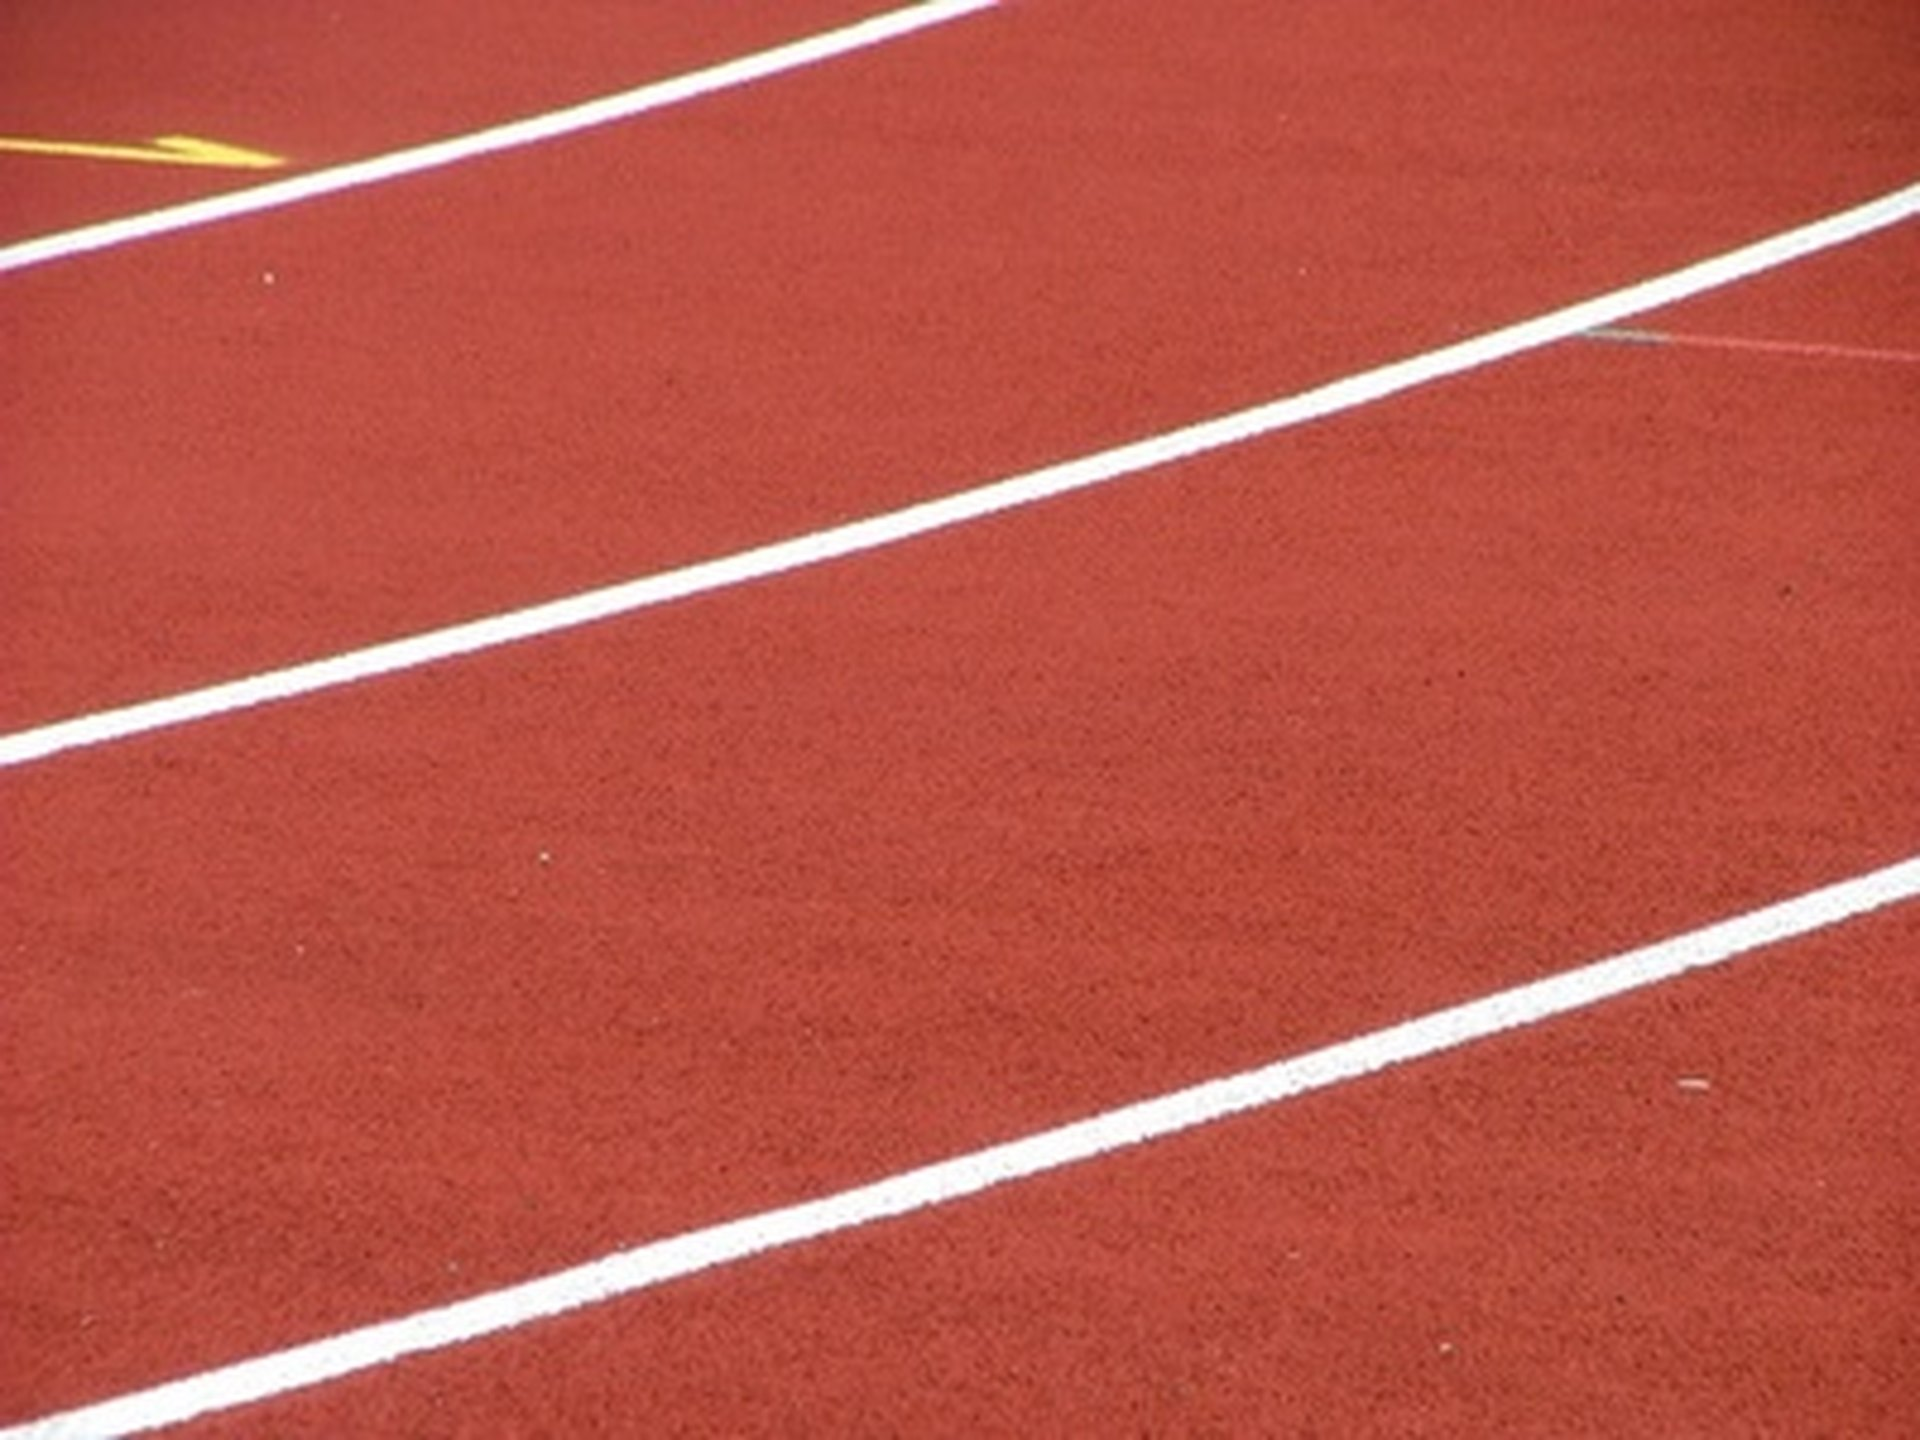 What Are The Rules For 100m Sprint Basic Skills In Relay Race